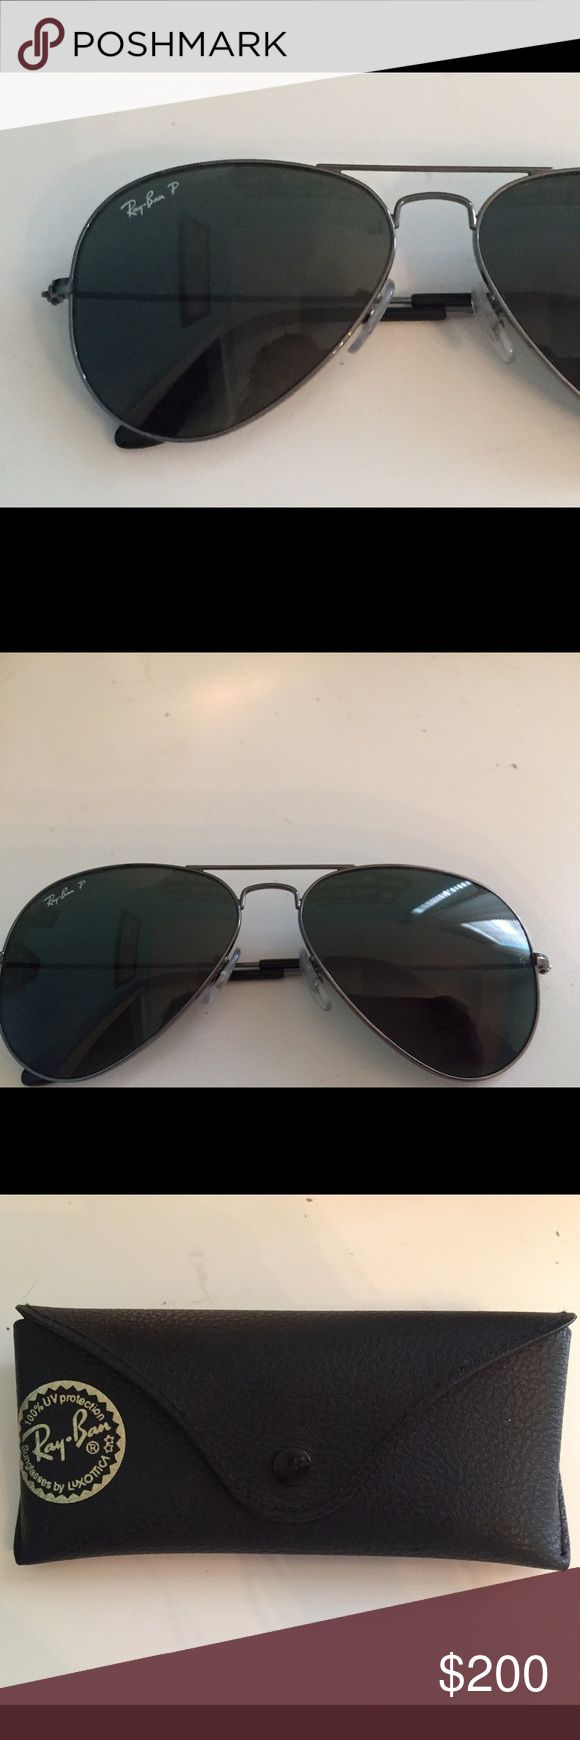 Black Polarized Ray Bans all black carbon fibre aviators *polarized* in perfect condition only worn once or twice! Ray-Ban Accessories Sunglasses